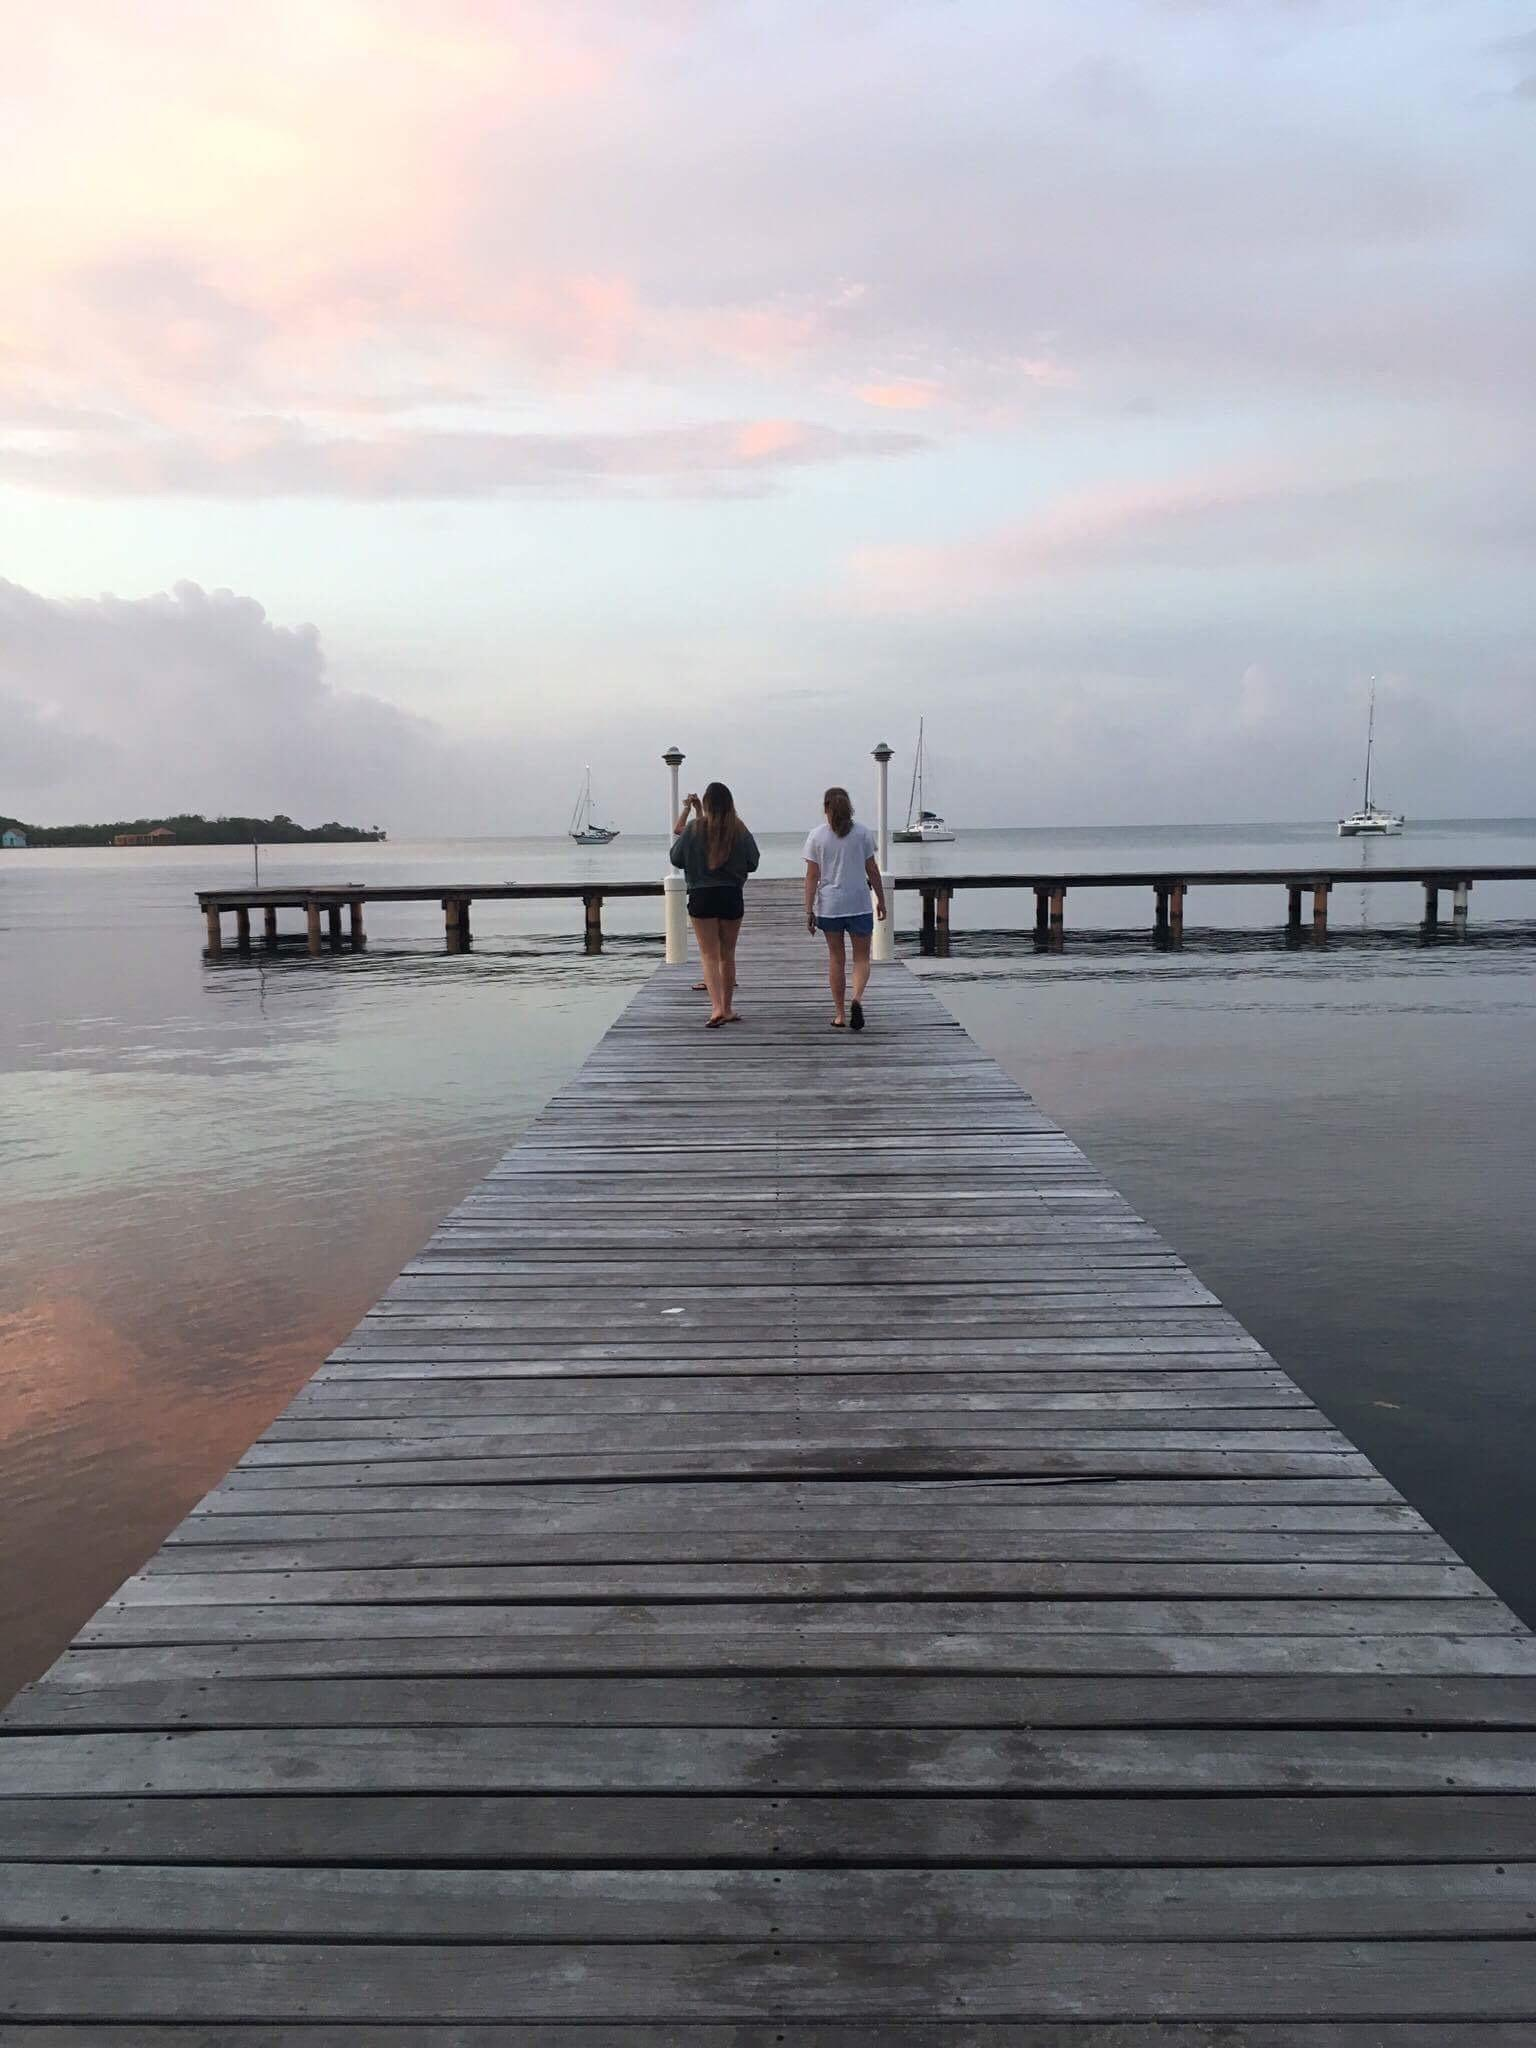 Projects Abroad marine conservation group volunteers walking down a dock